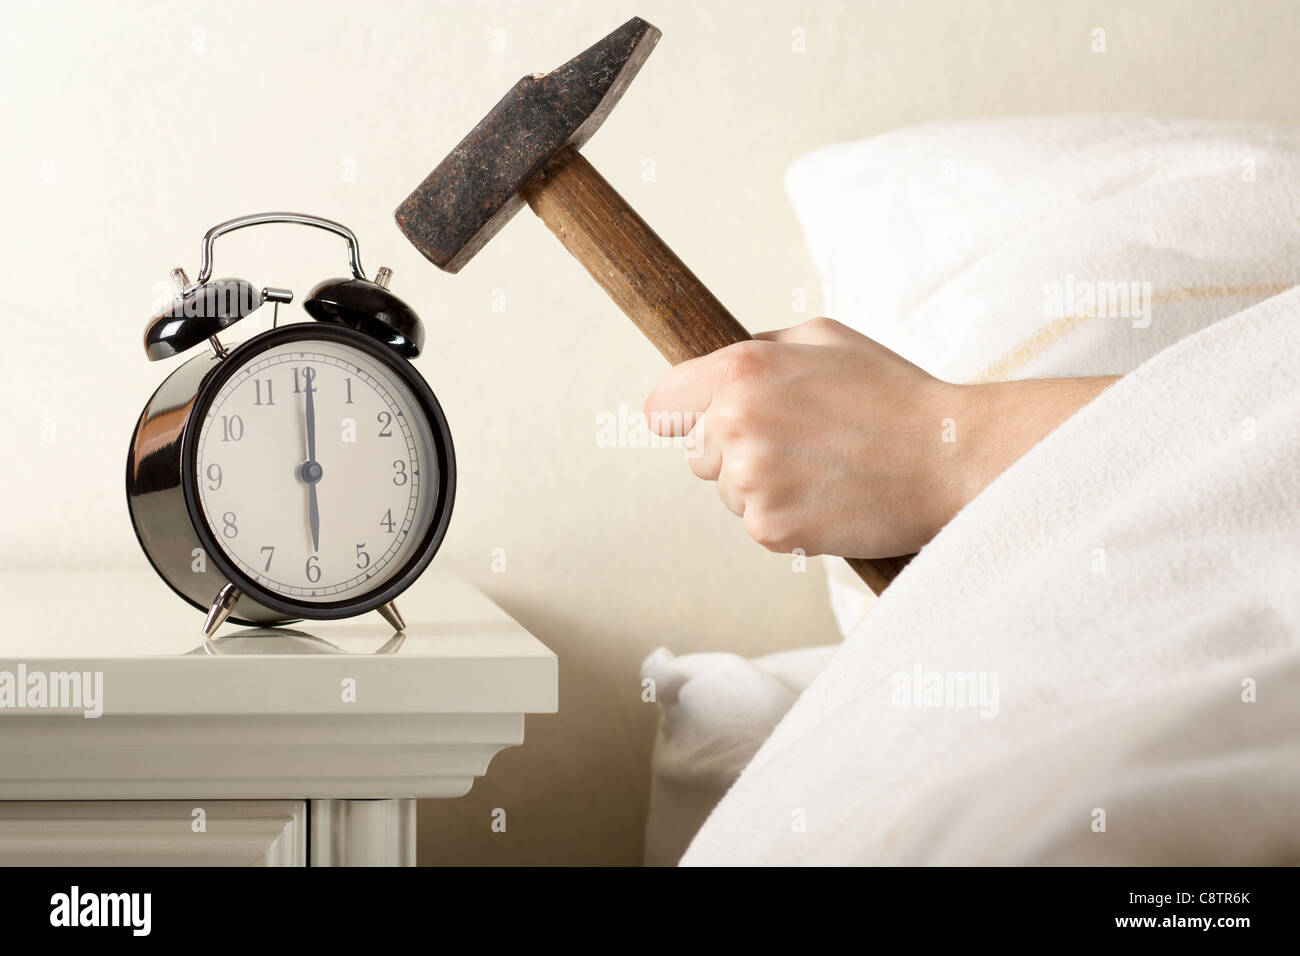 Crushing Alarm Clock with Hammer - Stock Image